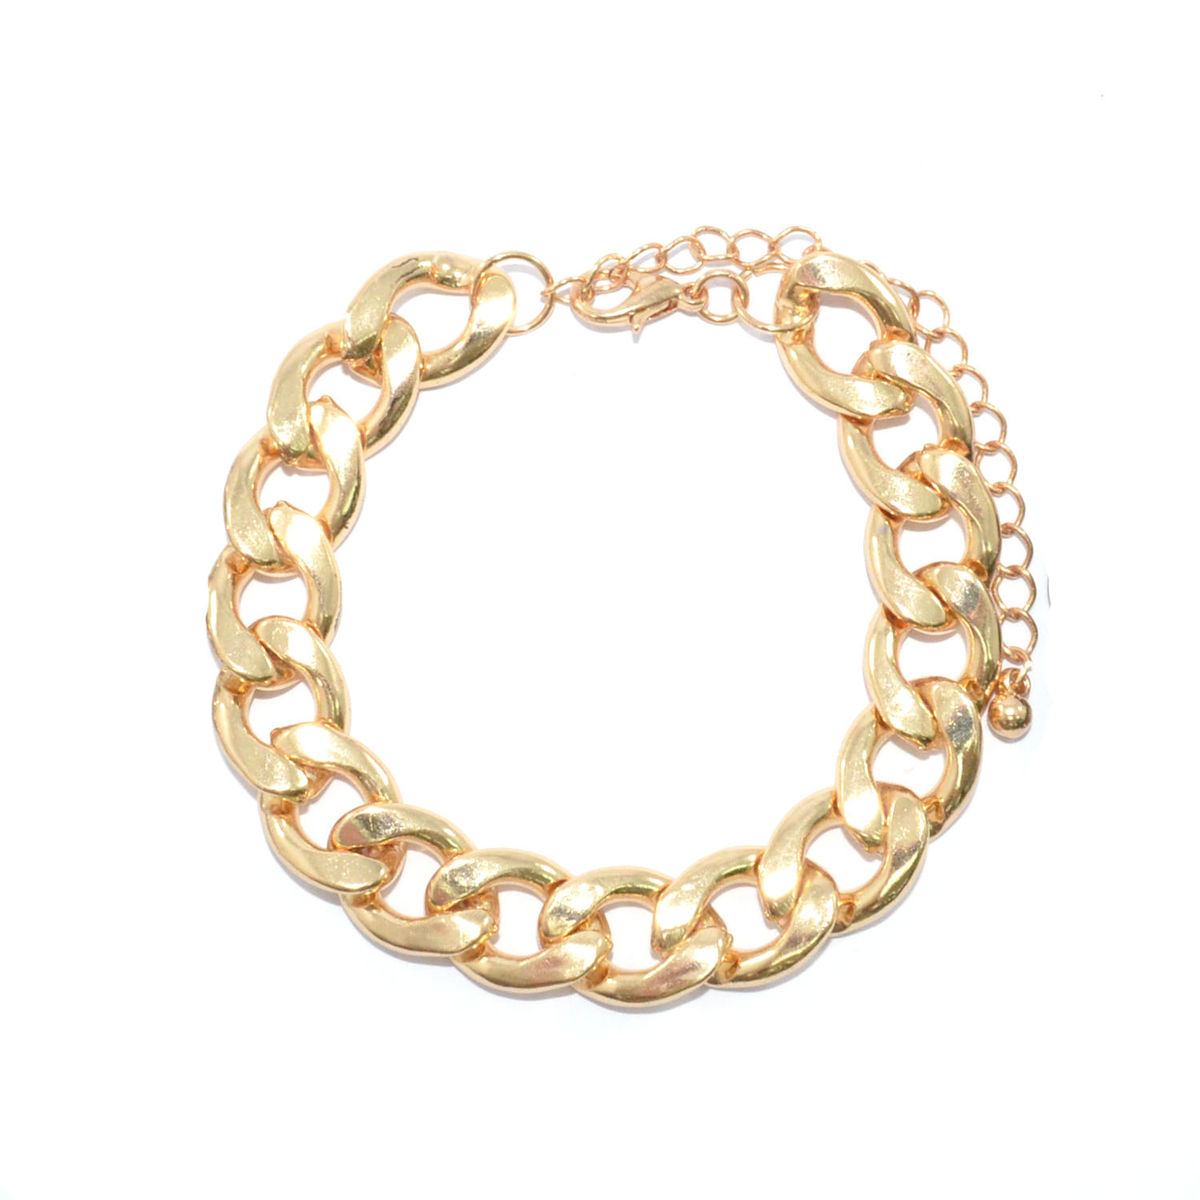 METALLIC CHUNKY CHAIN BRACELET - Rings & Tings | Online fashion store | Shop the latest trends